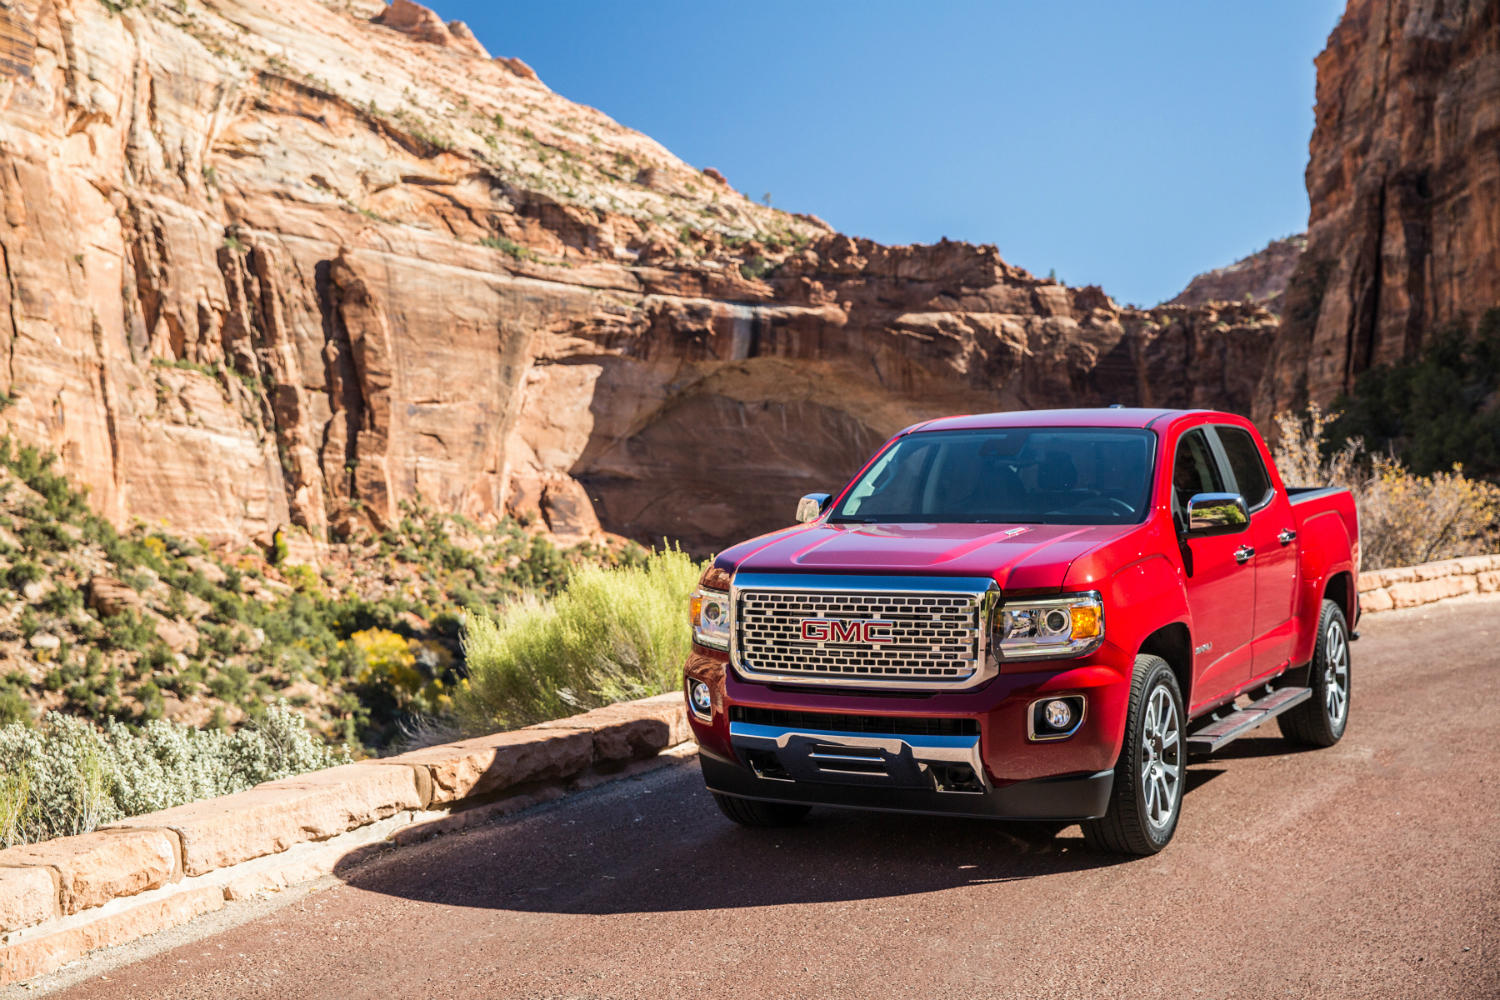 2018 gmc canyon release date prices specs features digital trends. Black Bedroom Furniture Sets. Home Design Ideas